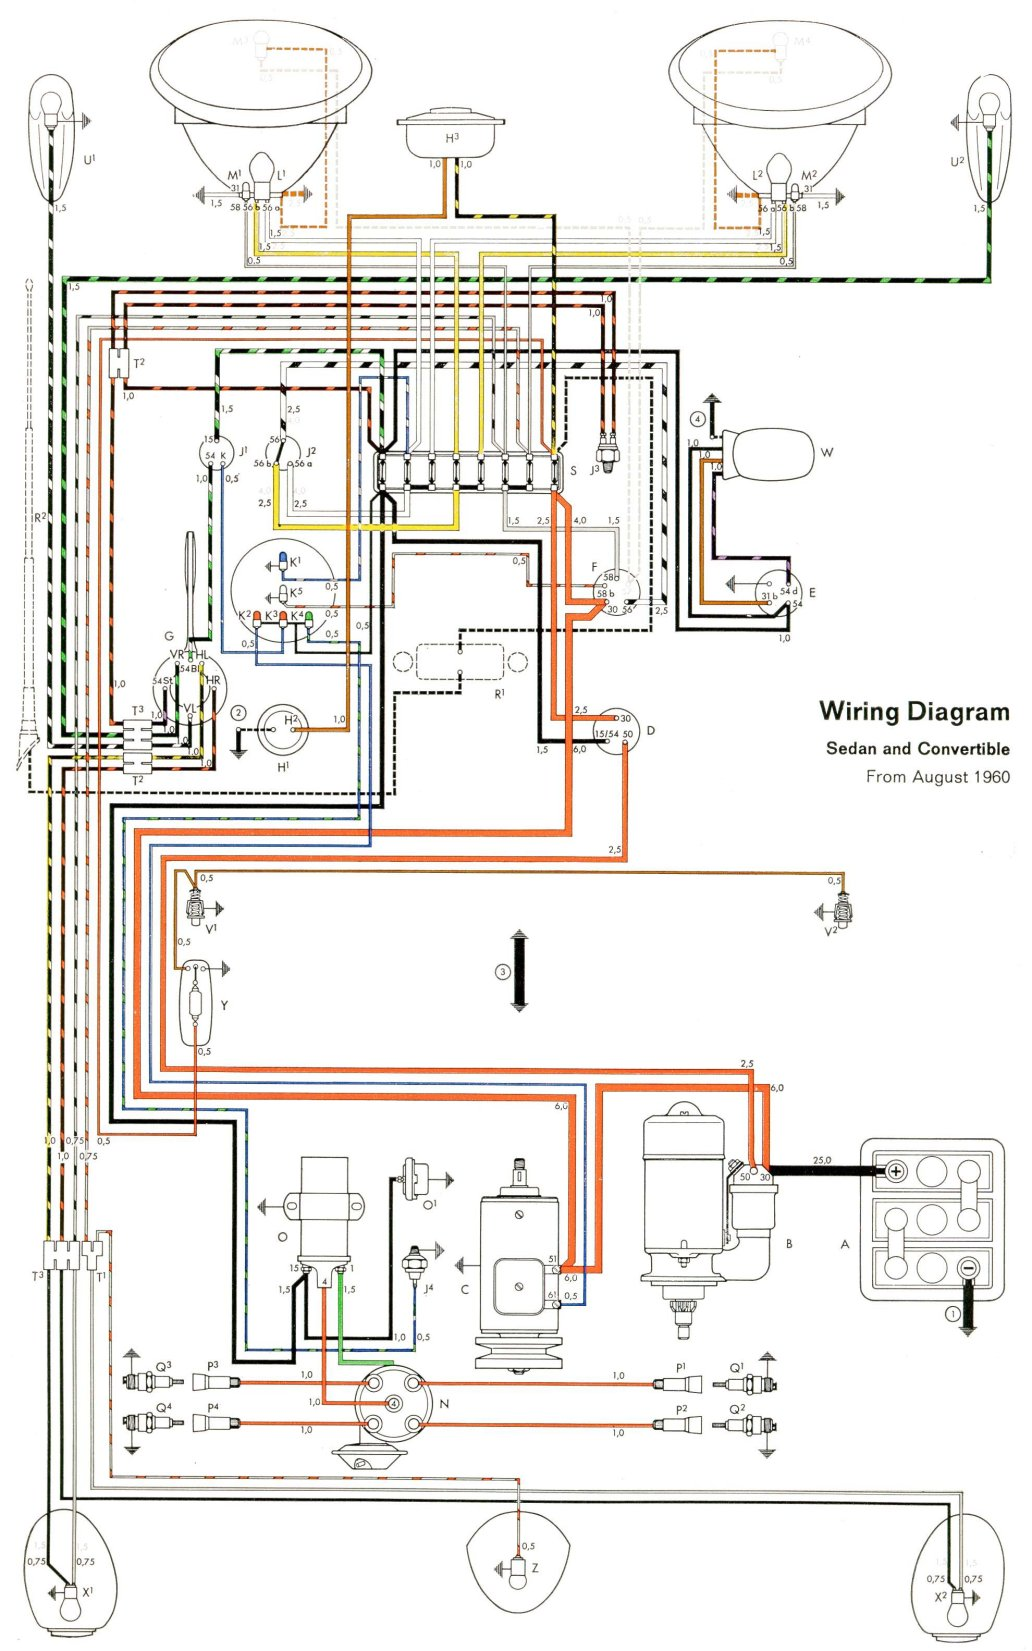 wiring diagram for 1979 vw super beetle wiring diagram database 74 bug wiring schematics thesamba com type 1 wiring diagrams 1979 ford mustang wiring diagram wiring diagram for 1979 vw super beetle